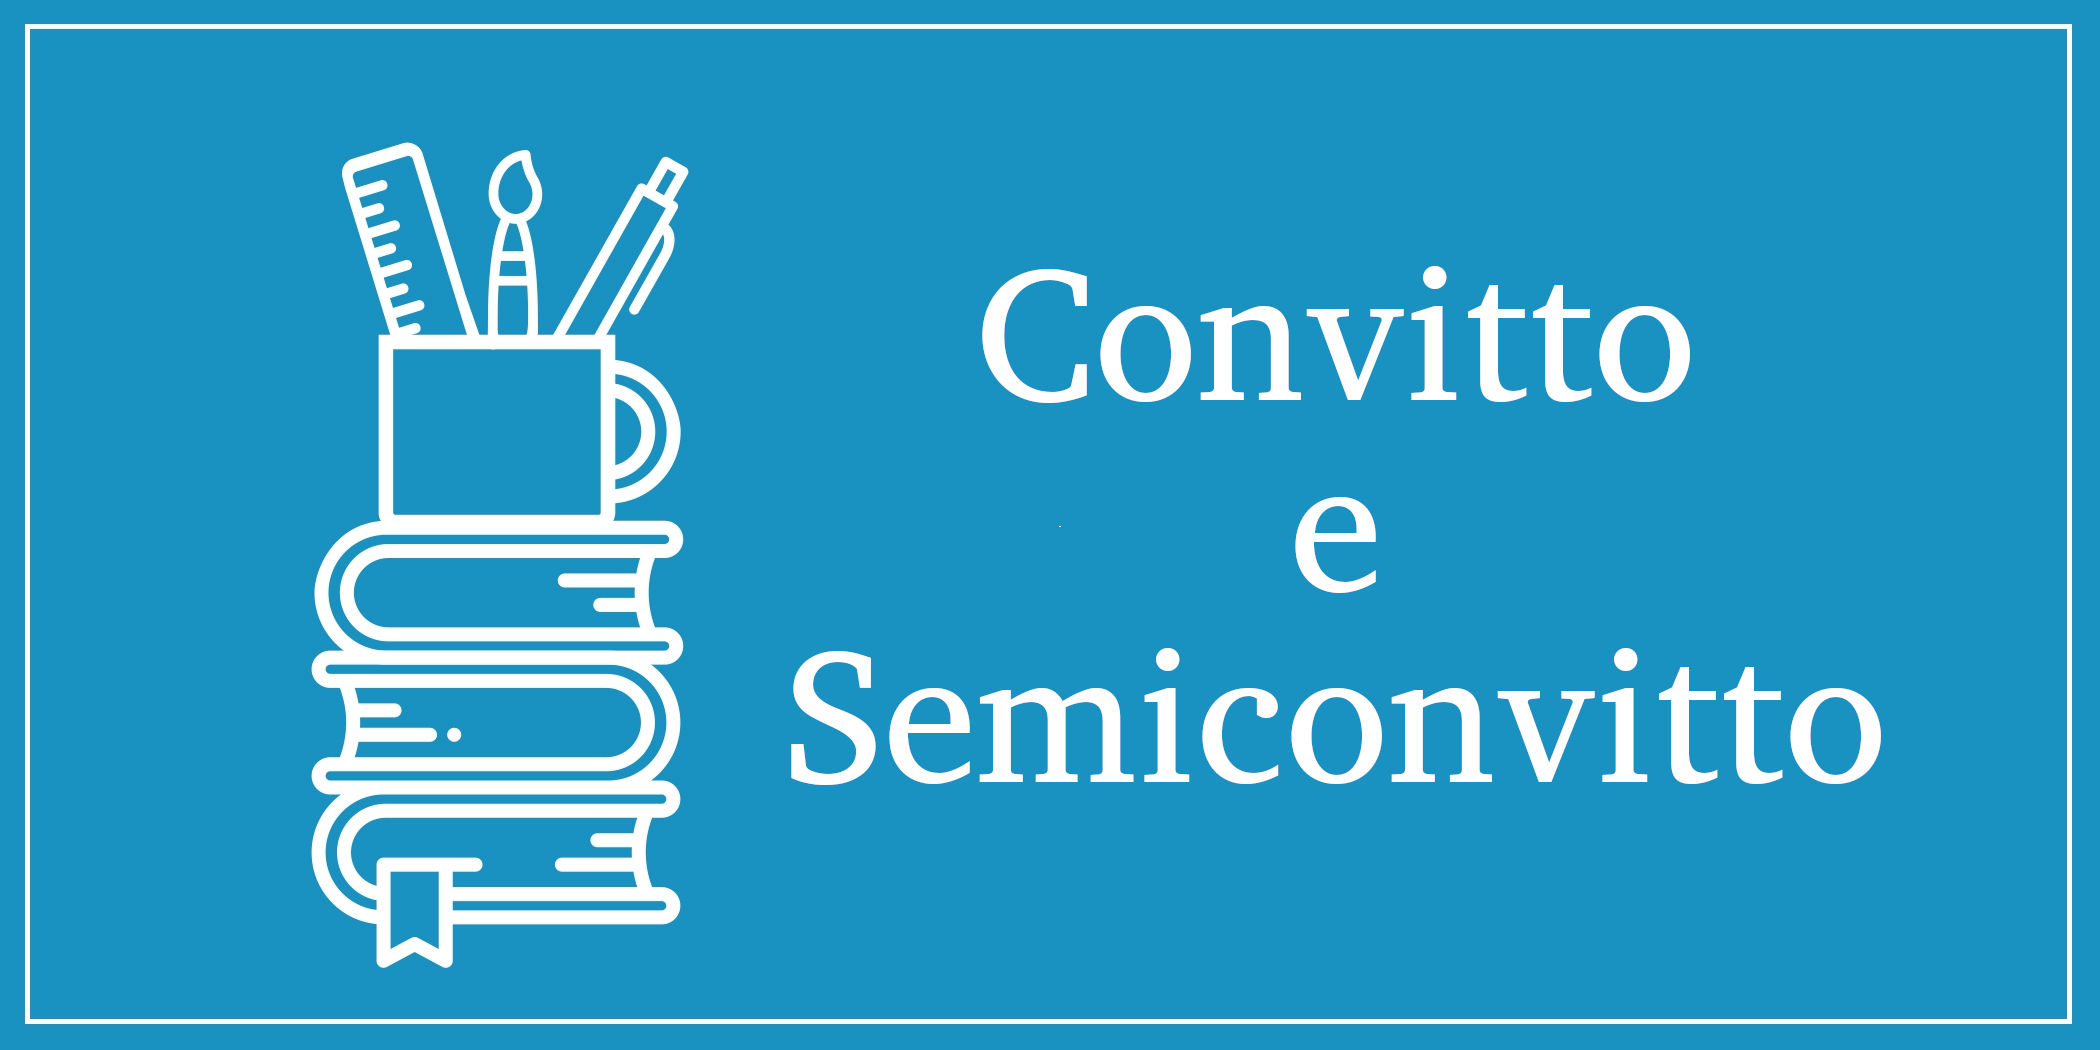 Convitto e Semiconvitto